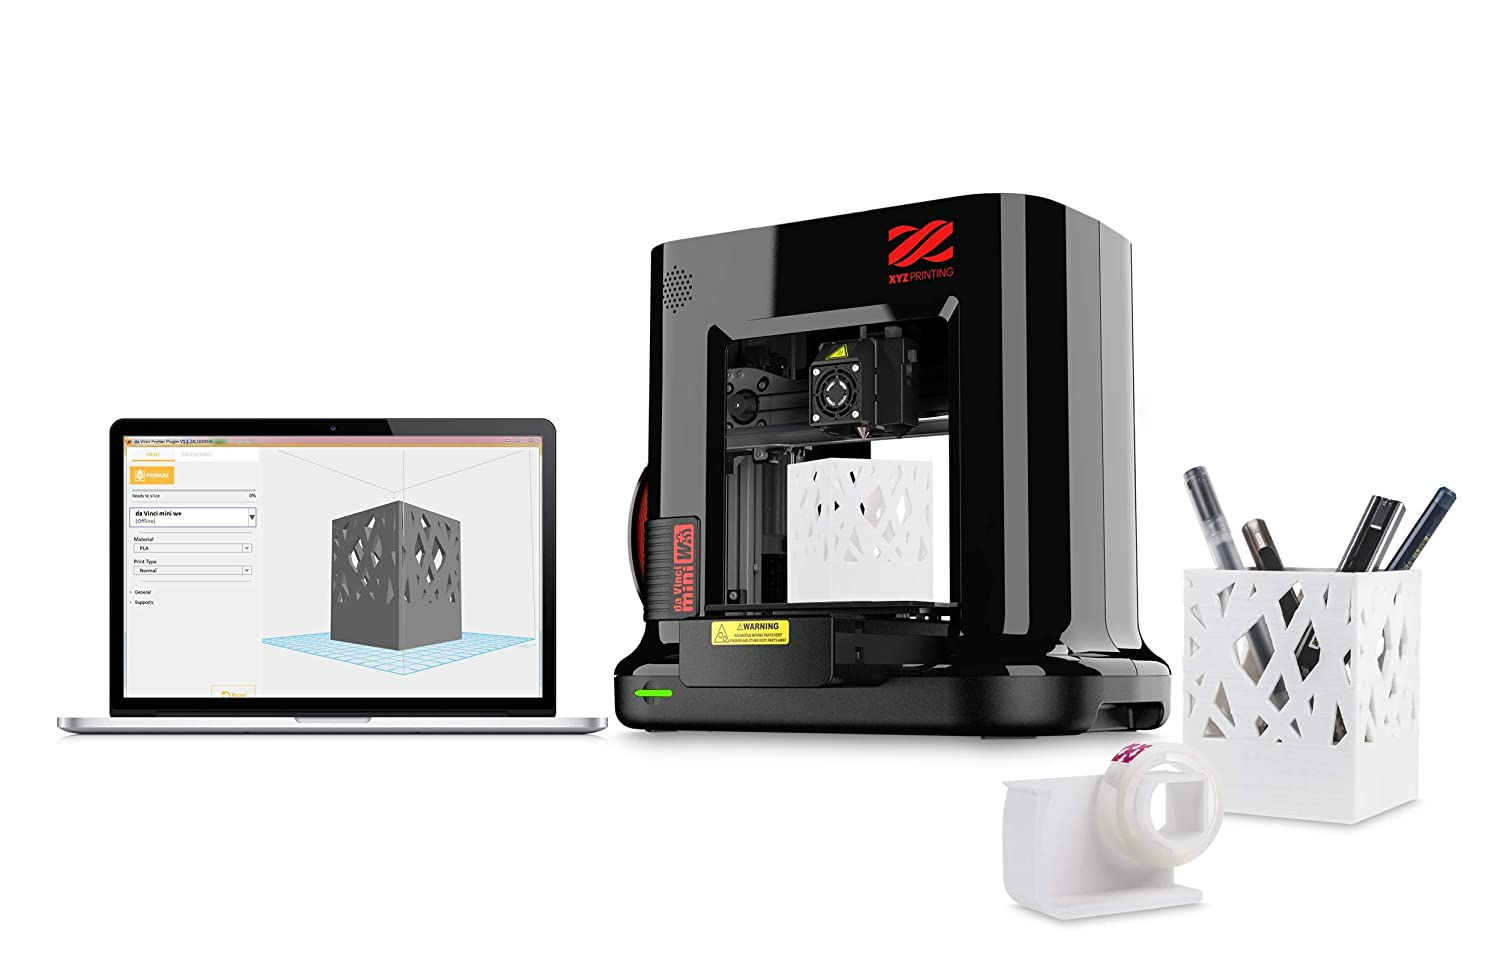 XYZ Printing da Vinci mini w 3D printer (fully assembled), Wireless, FREE  for: £12 300g PLA filament, £15 maintenance tools, modelling software, and